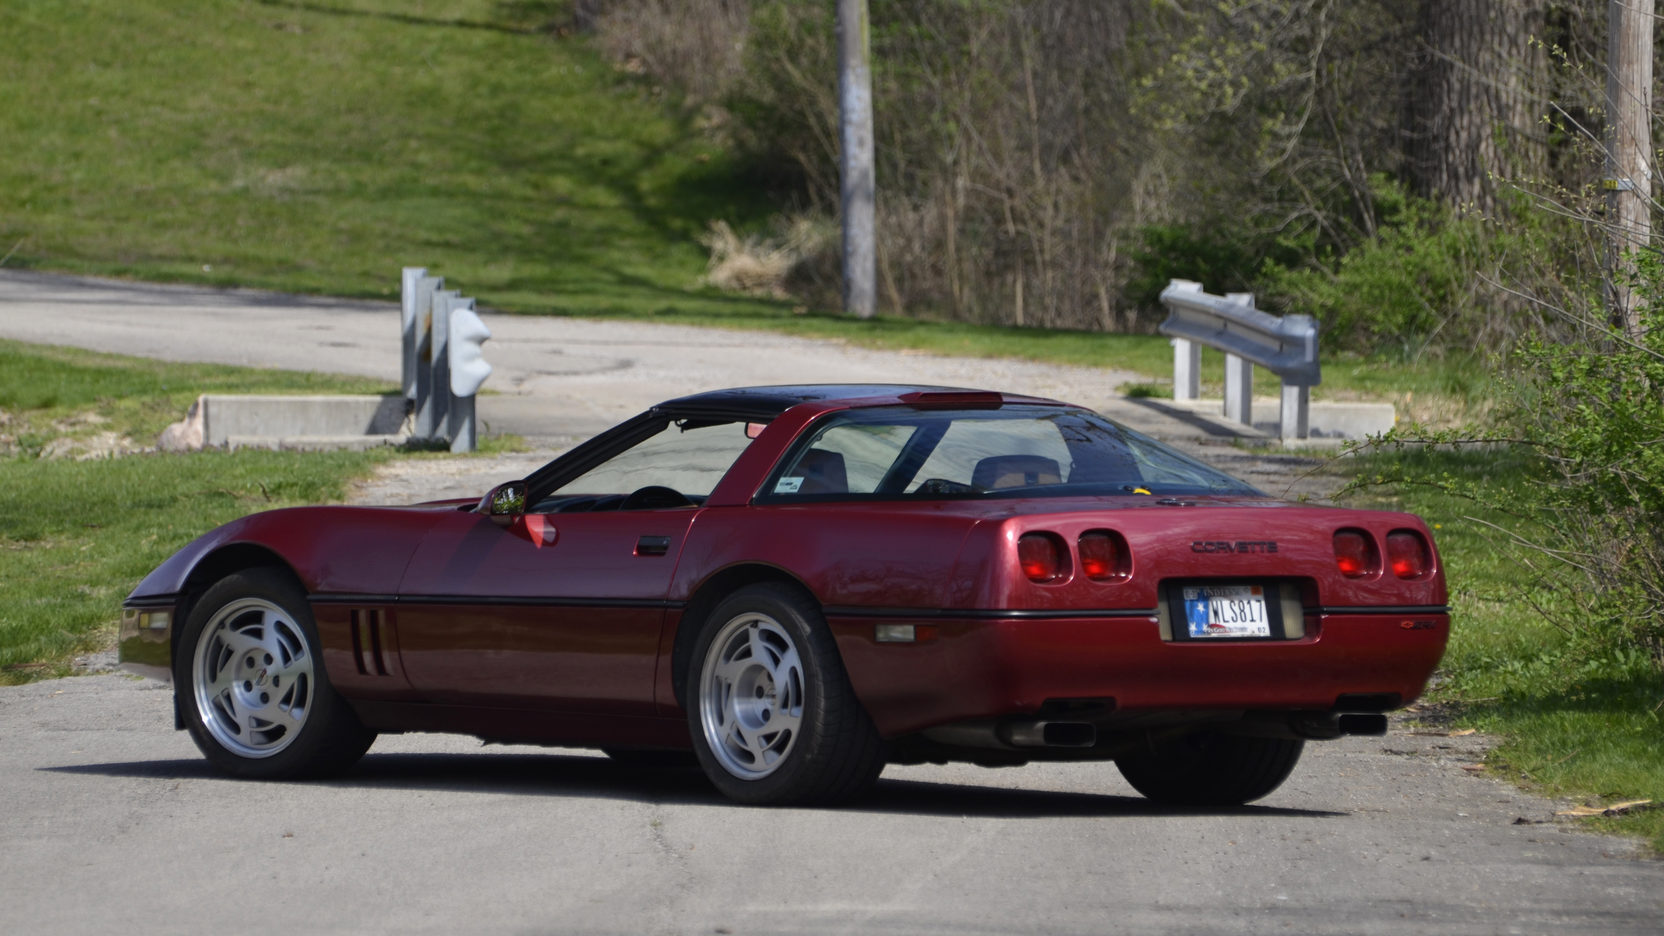 1990 Chevrolet Corvette Zr1 1990 Chevrolet Corvette Zr1 W143 Indy 2016